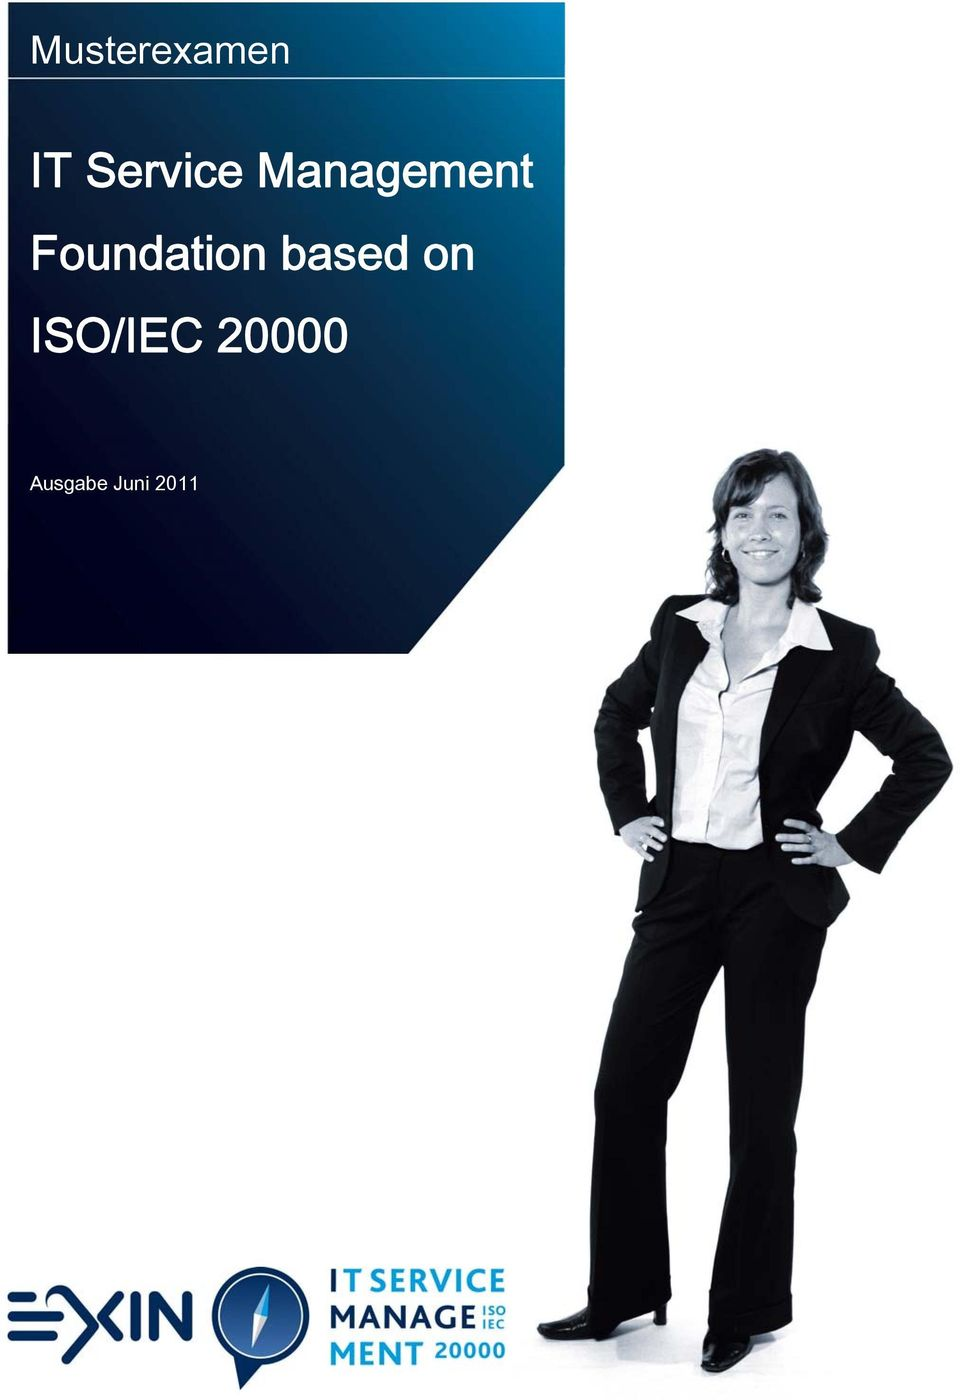 Foundation based on